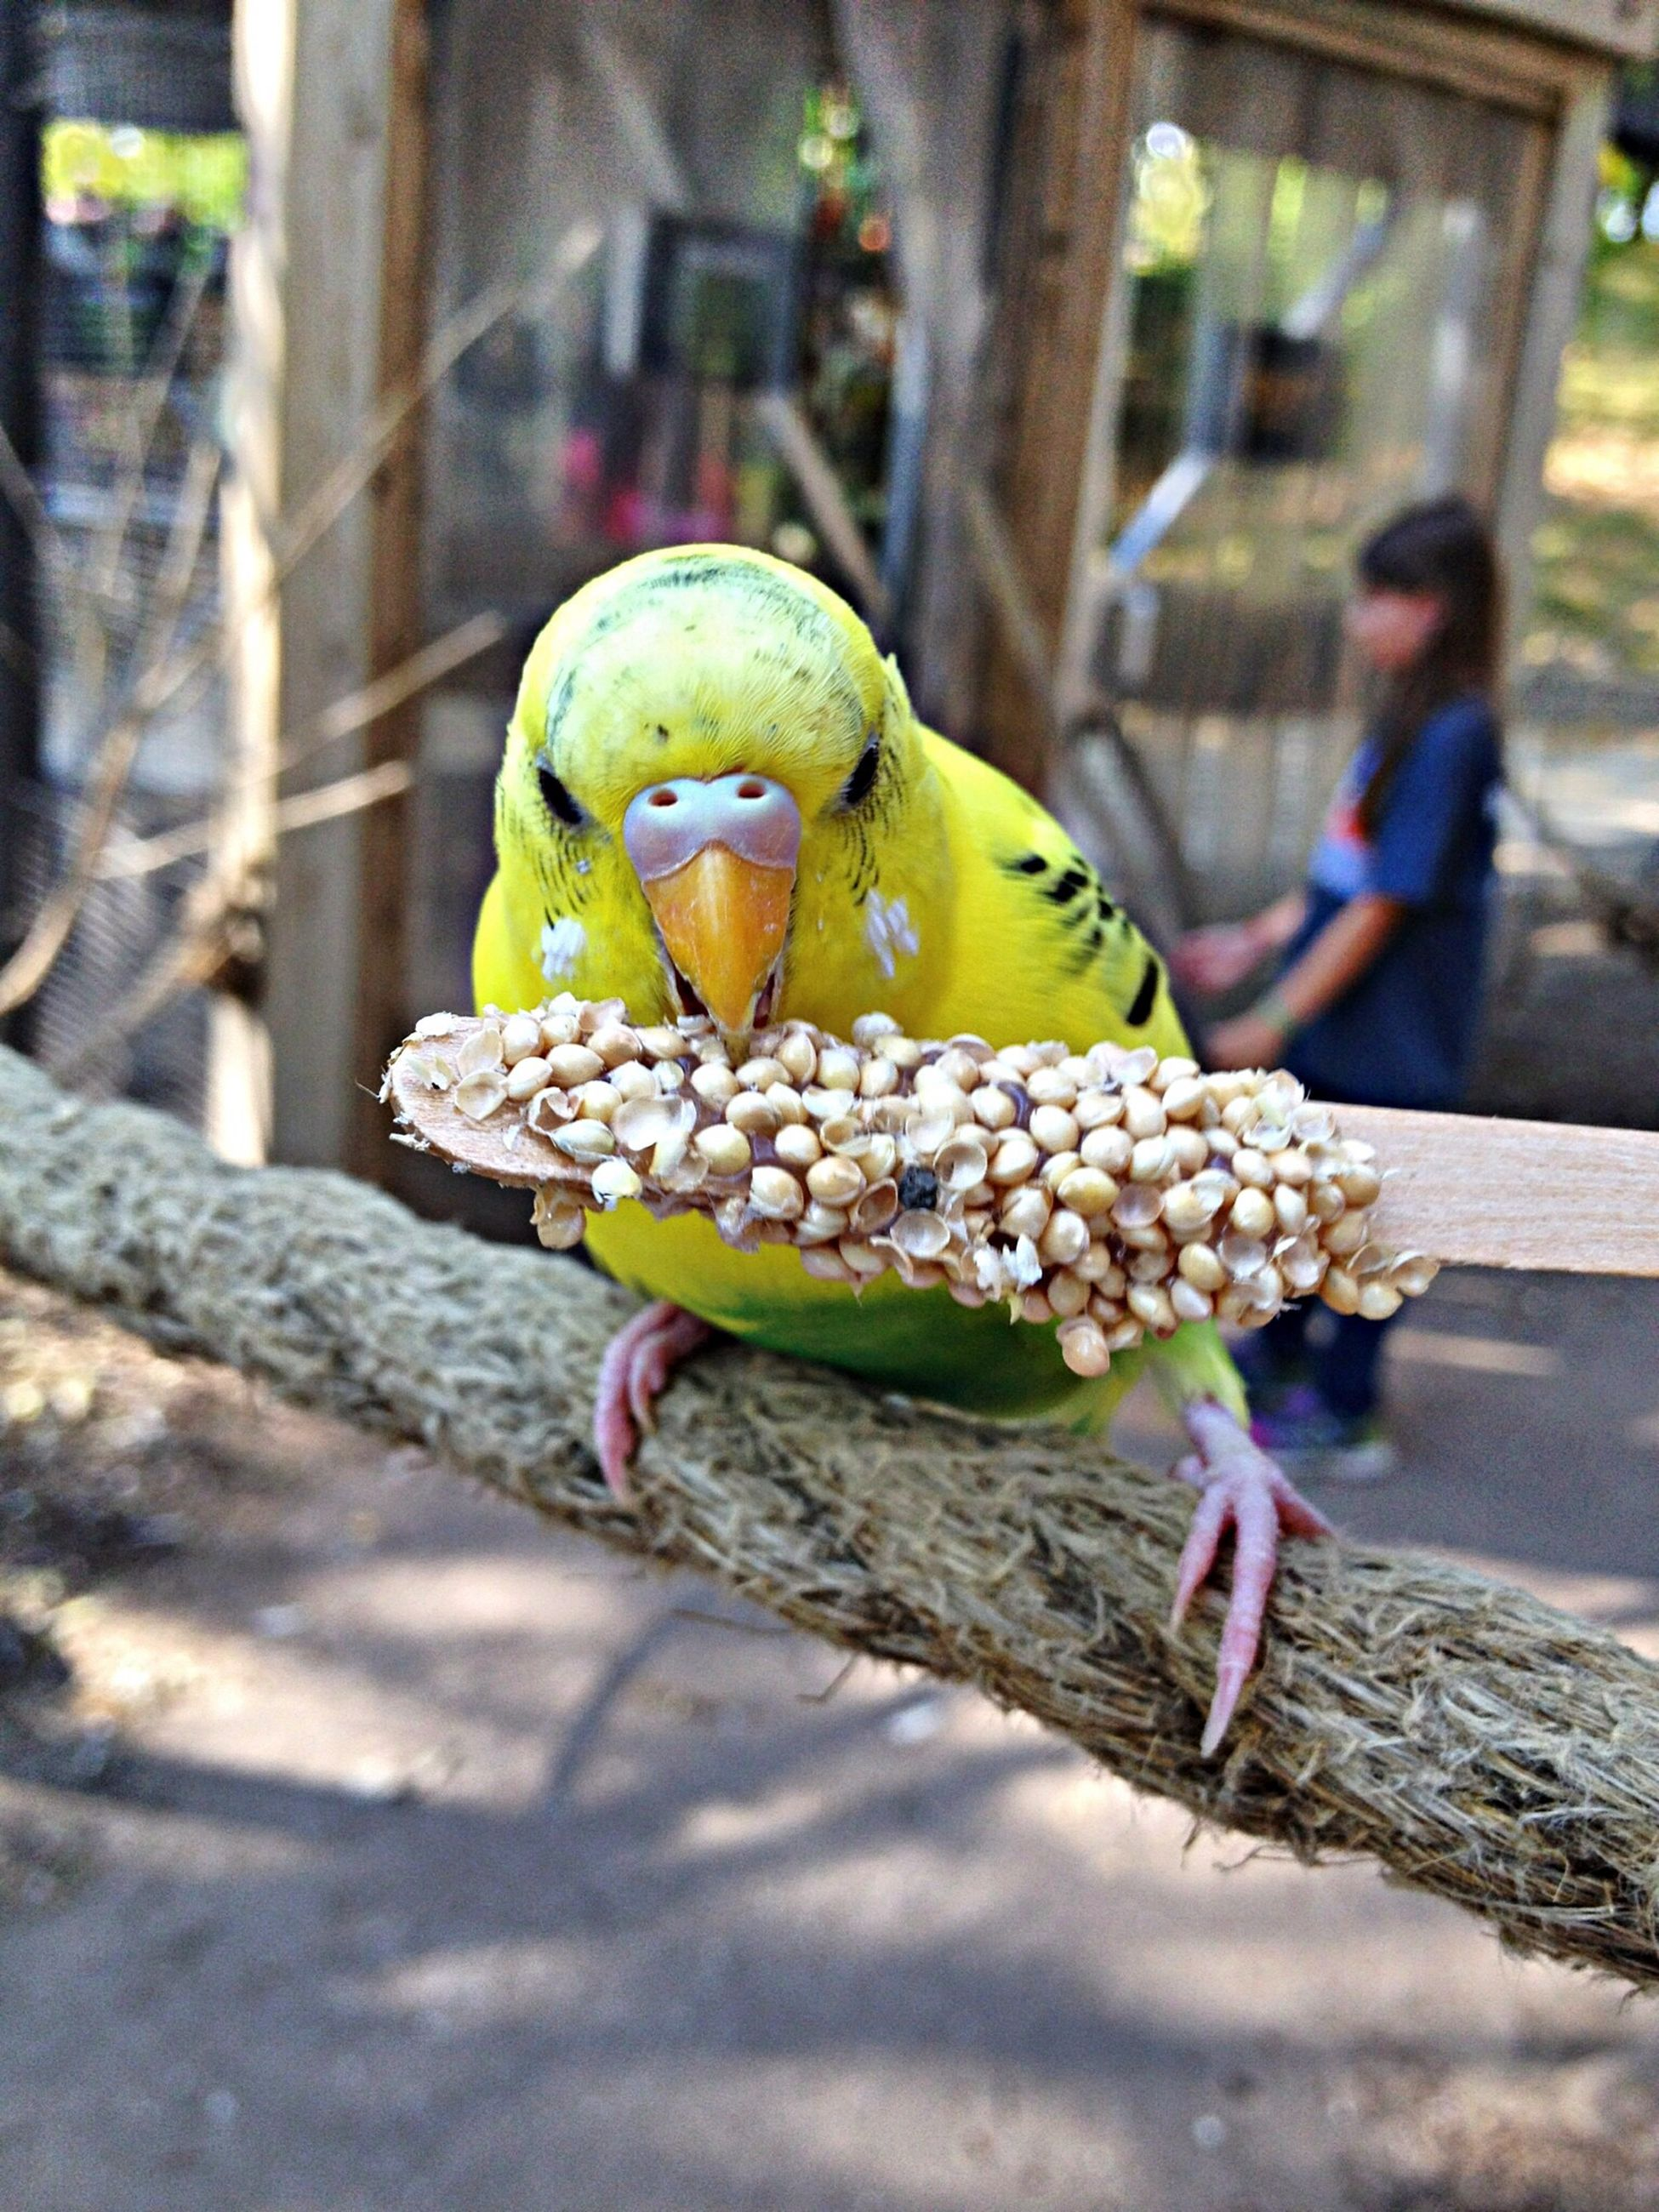 animal themes, animals in the wild, one animal, wildlife, bird, focus on foreground, perching, parrot, close-up, zoo, animals in captivity, beak, full length, lizard, reptile, side view, outdoors, day, animal head, branch